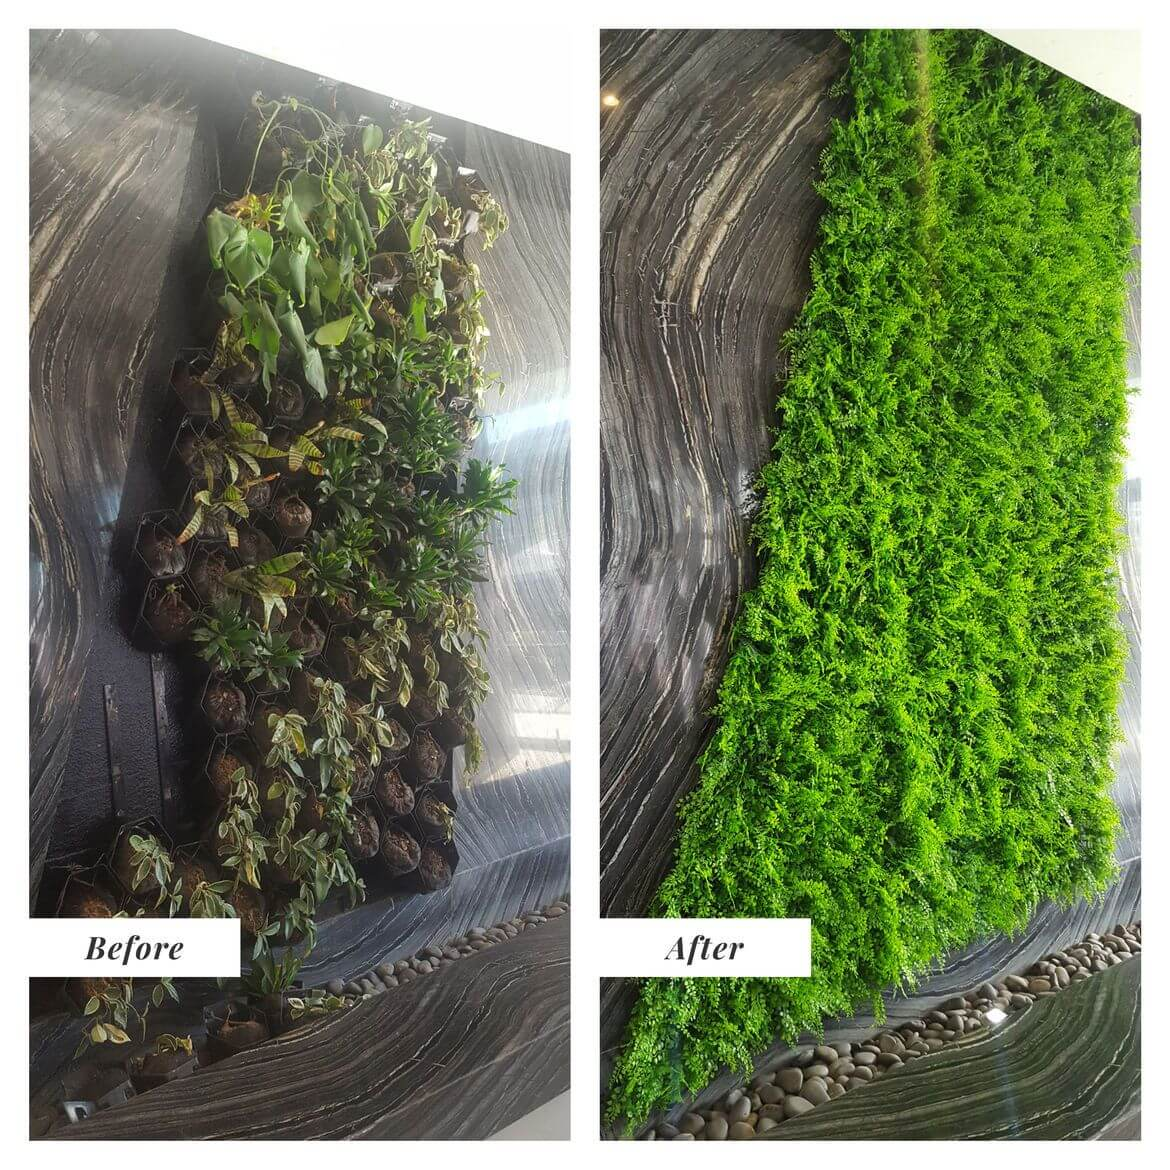 Wall Before And After Transformation With Artificial Plants